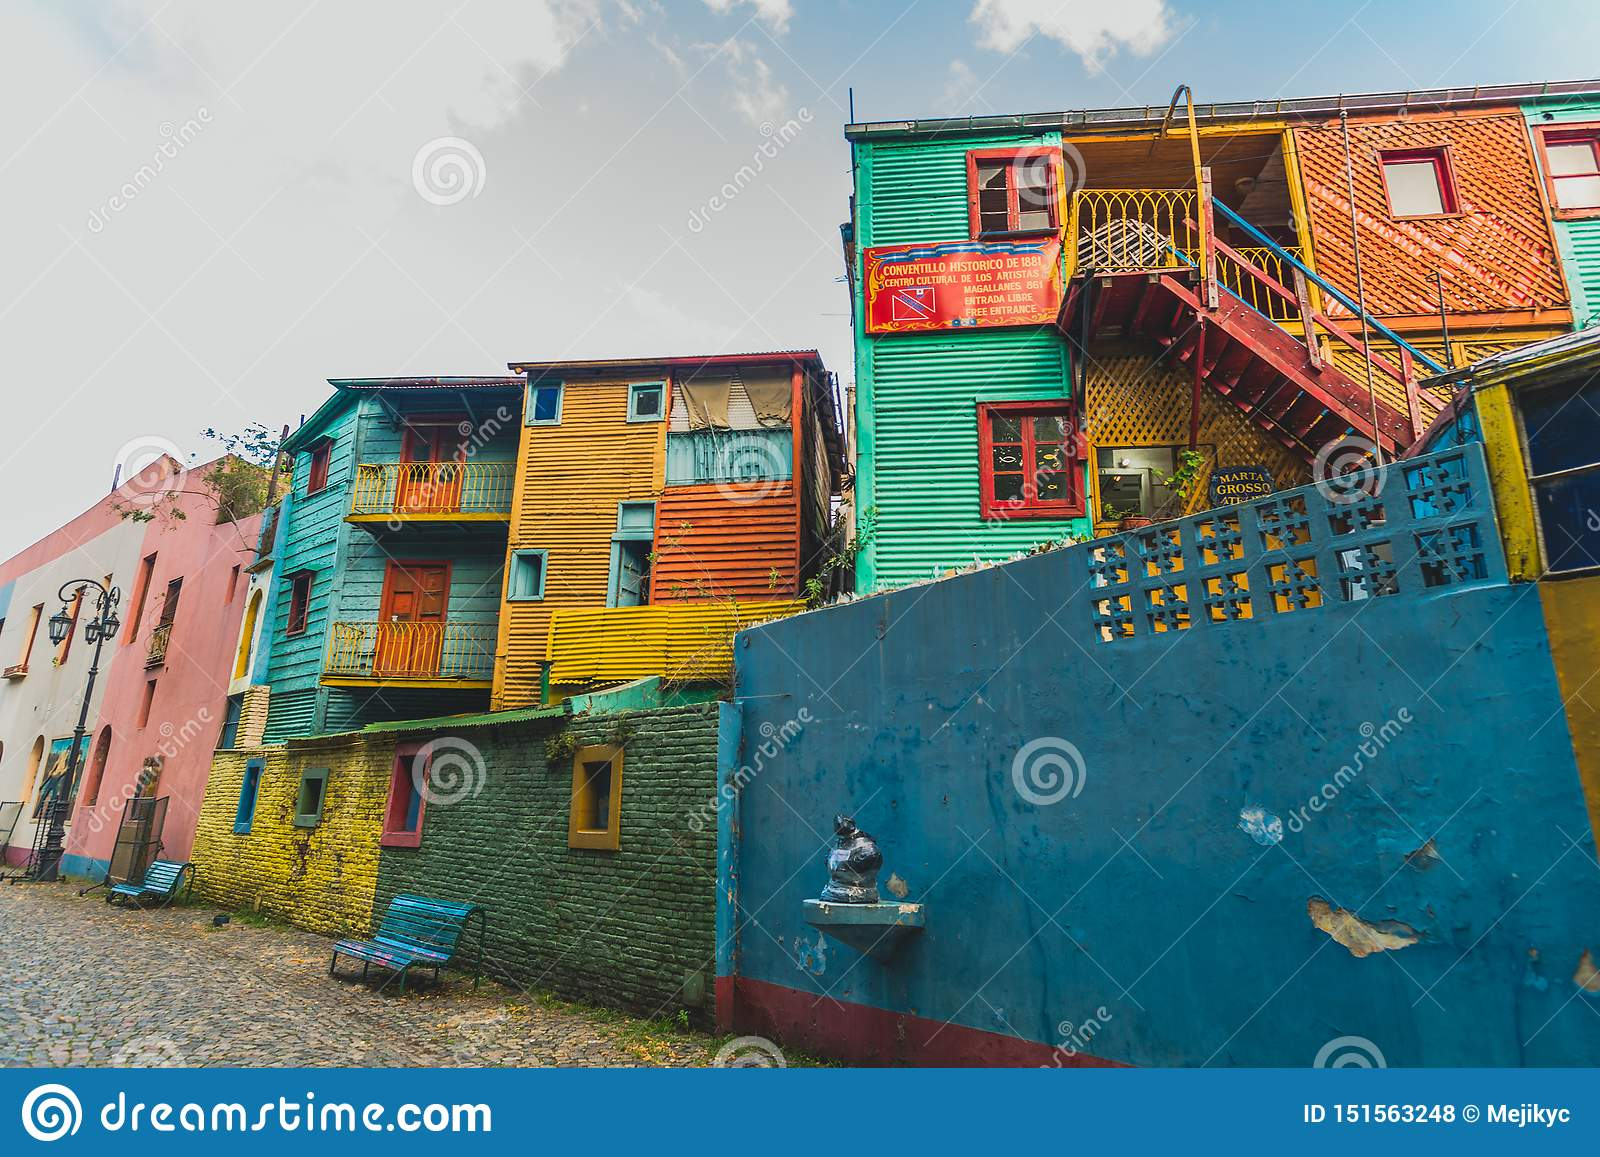 BUENOS AIRES, ARGENTINA - March 16, 2016: Colorful houses on Caminito street